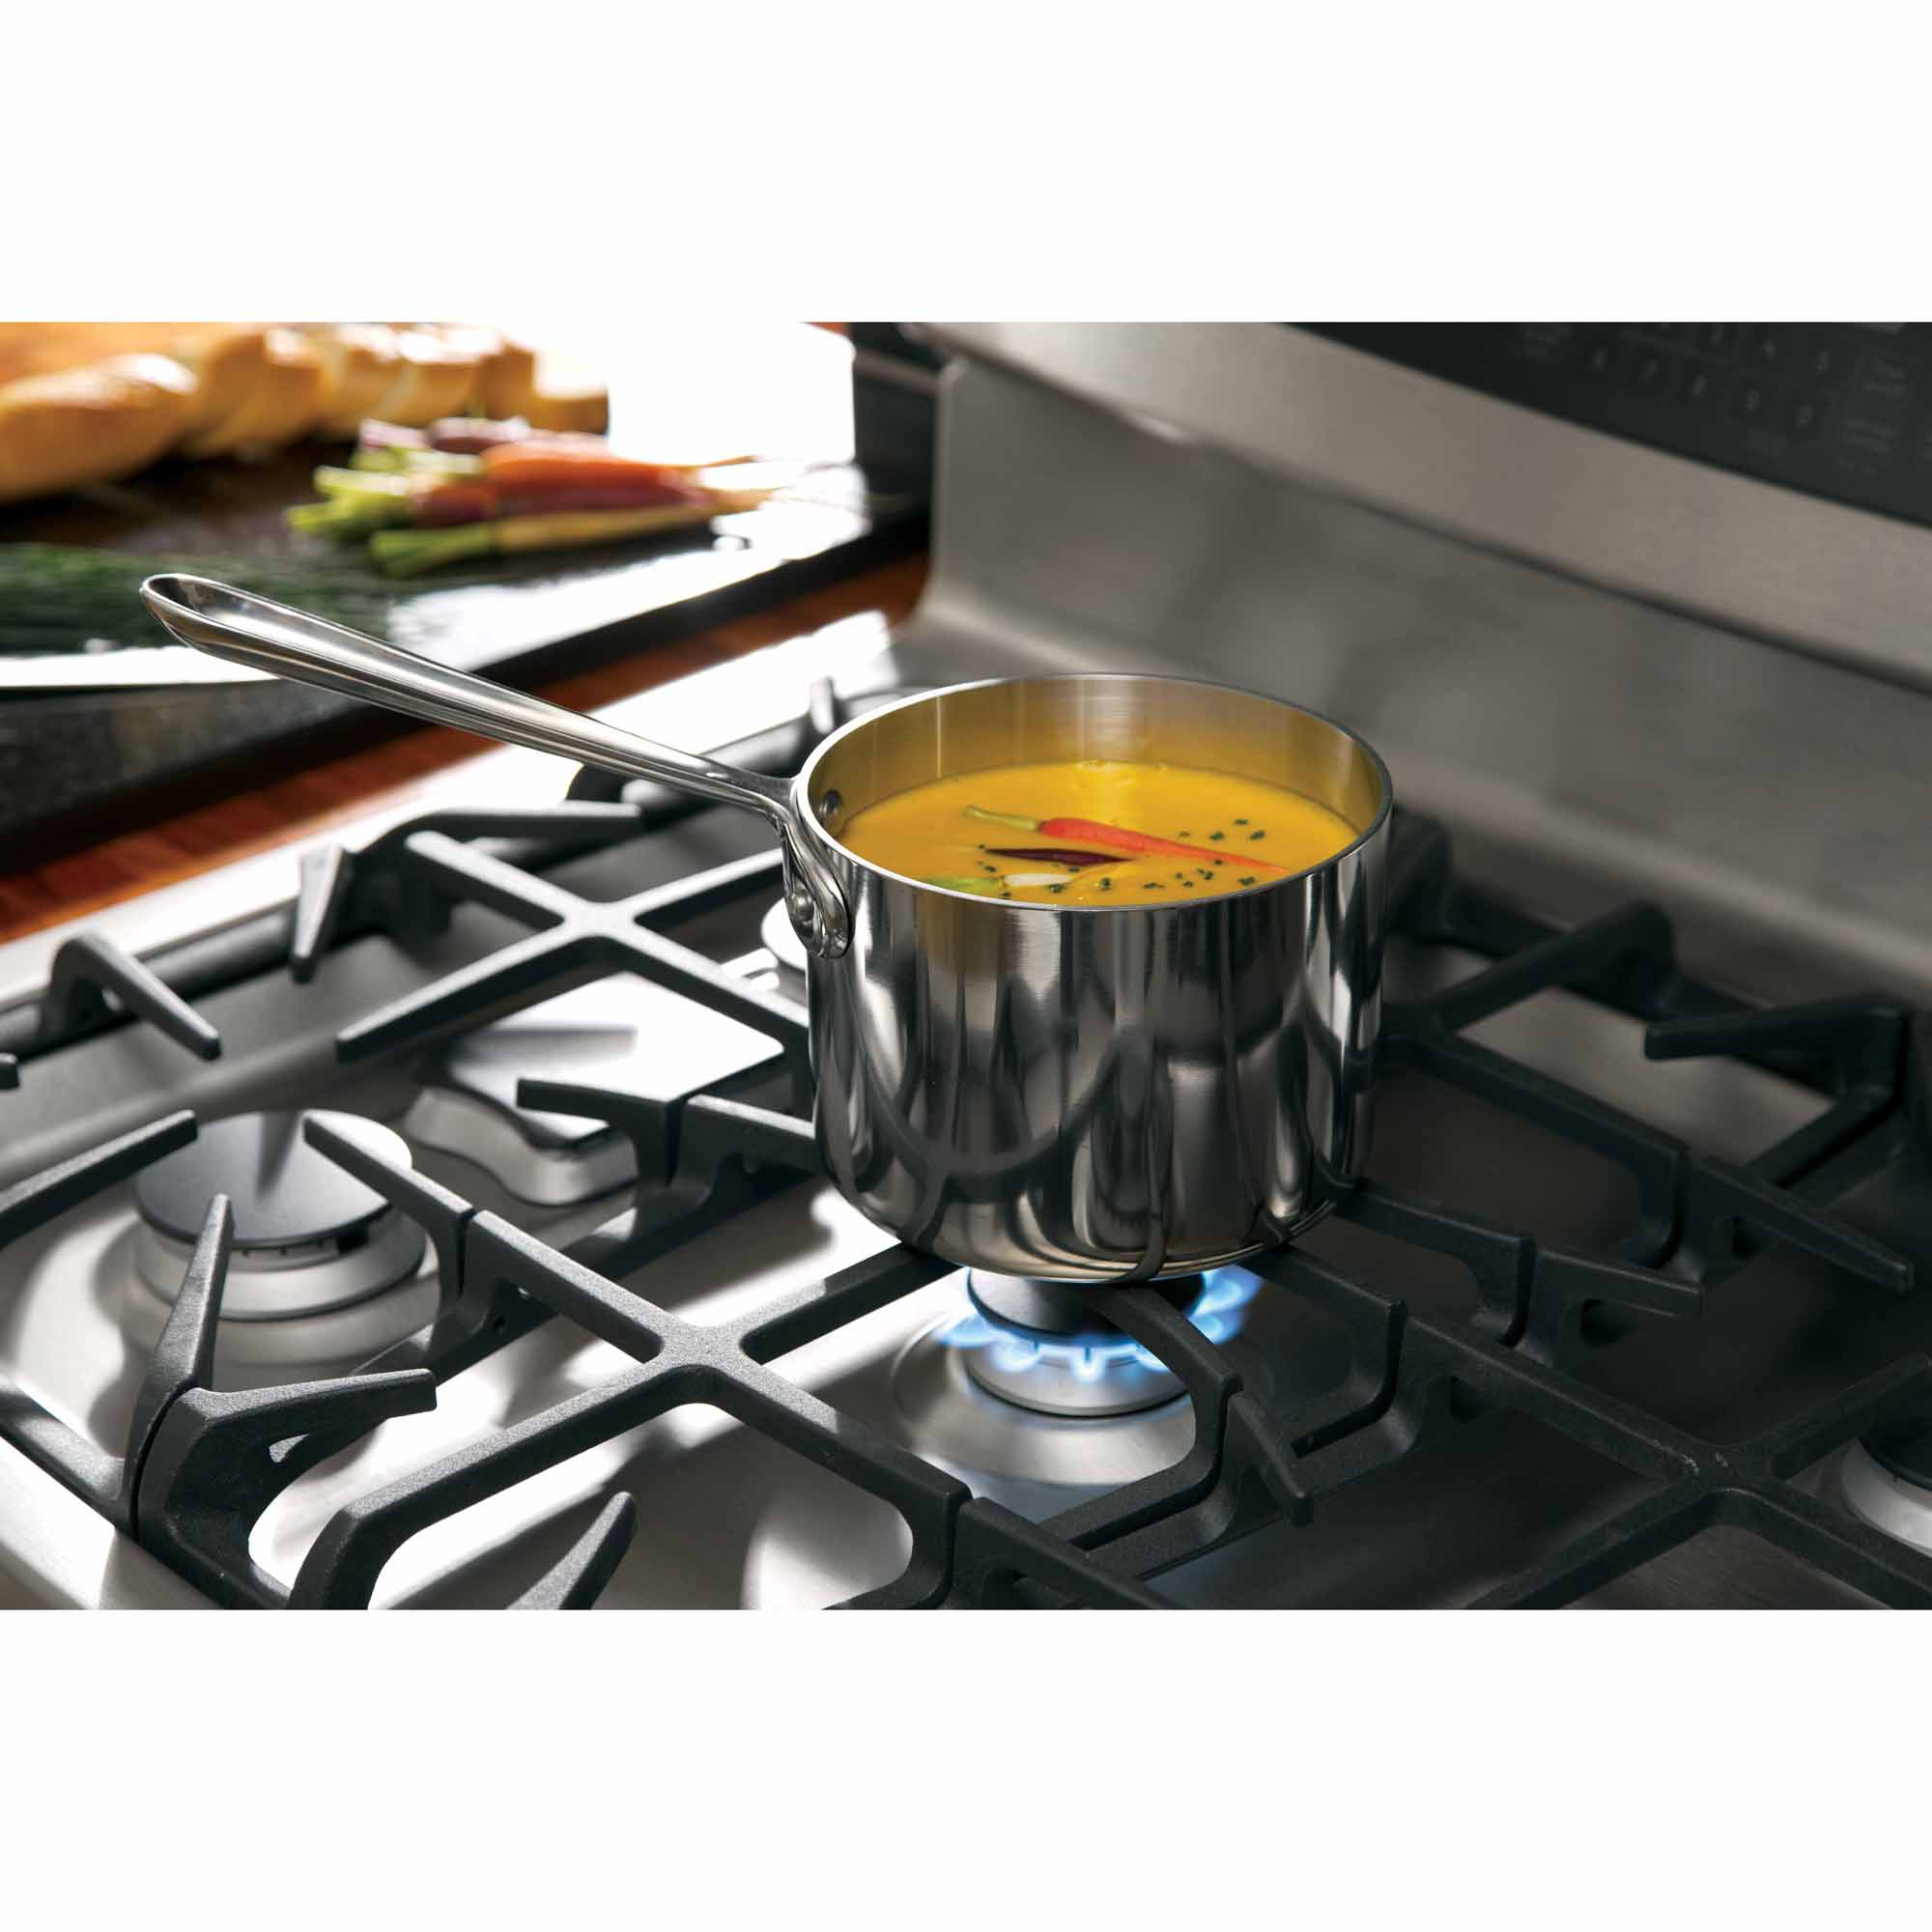 GE Profile 5.6 cu. ft. Gas Range w/ Self-Clean and Warming Drawer - Stainless-Steel